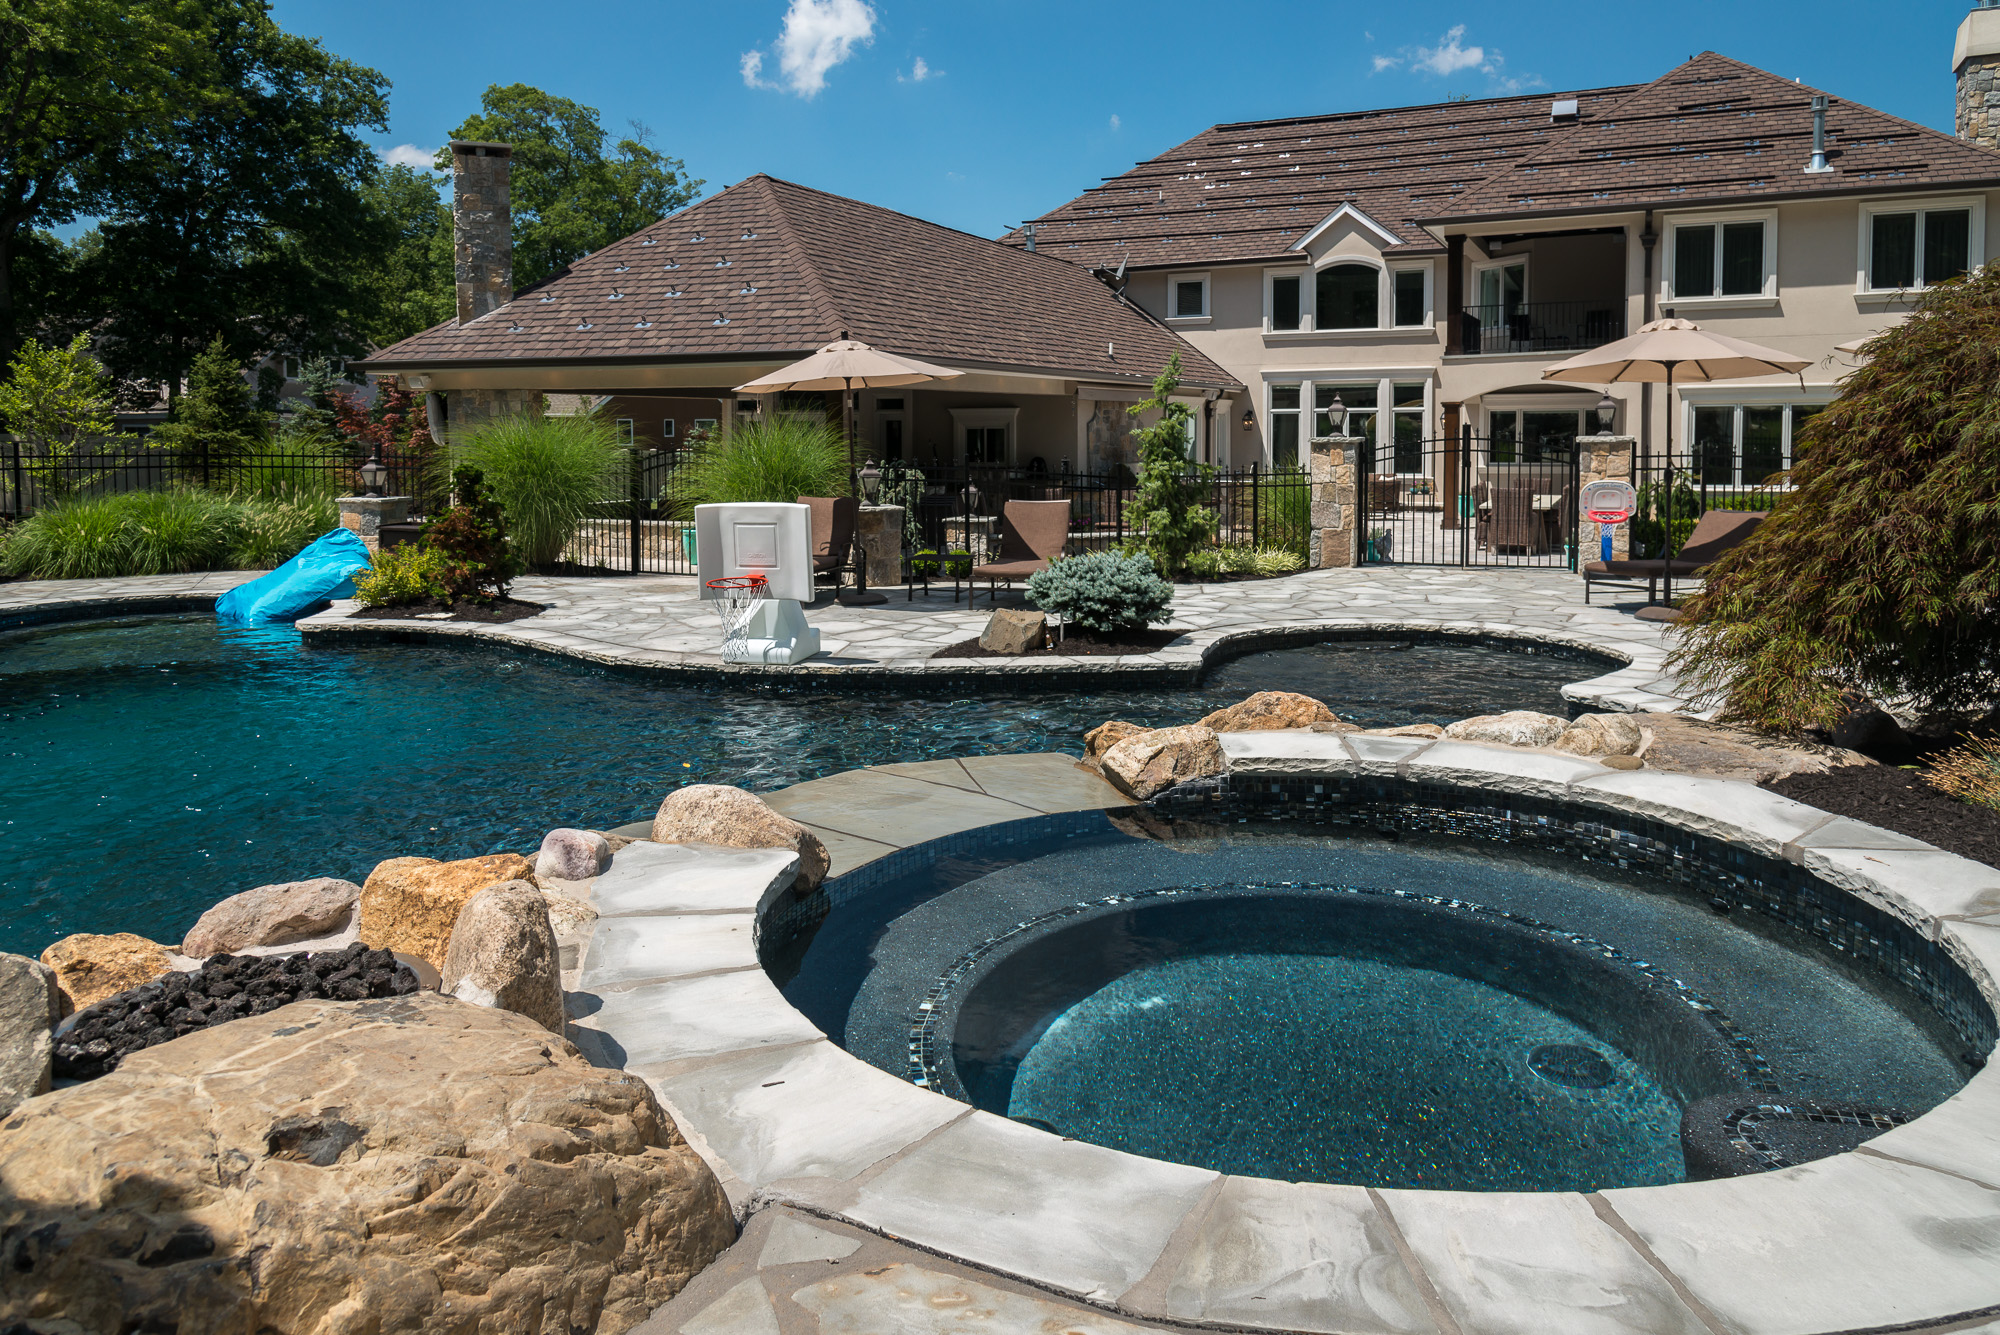 Livingston nj custom inground swimming pool design for Pool design inc bordentown nj